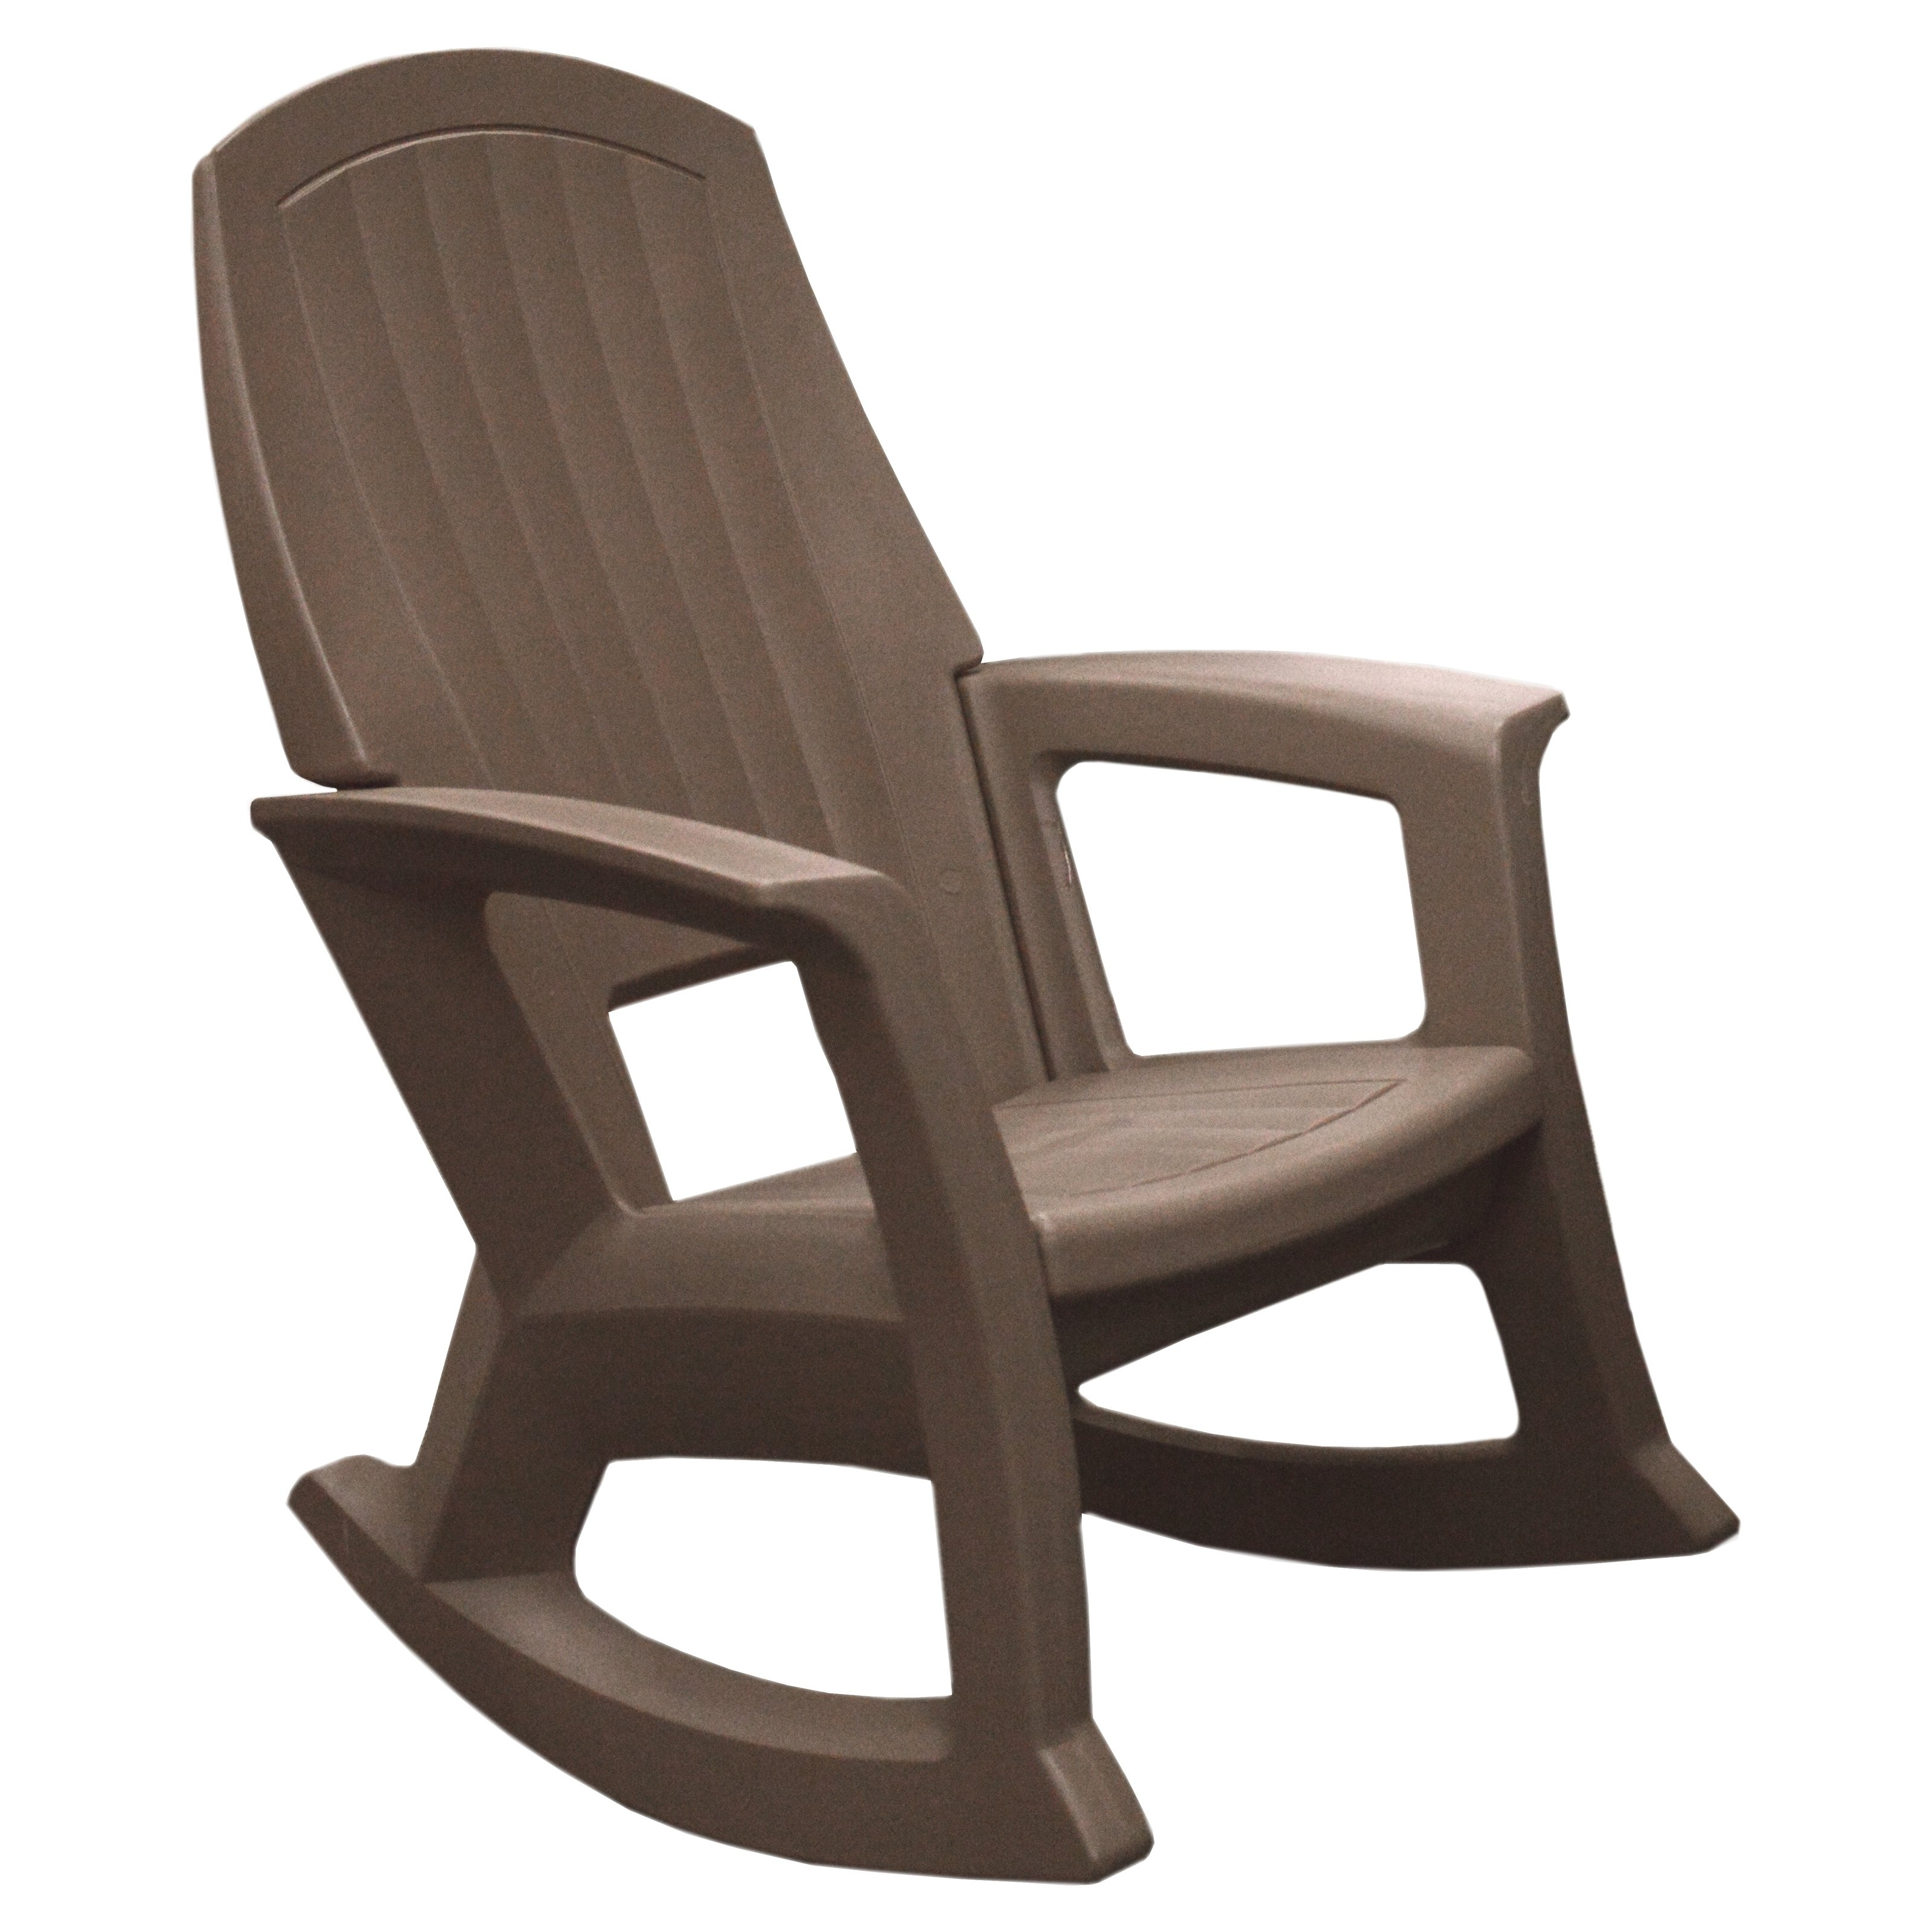 Popular Stackable Patio Rocking Chairs Regarding Resin Outdoor Rocking Chairs – Outdoor Designs (View 7 of 15)